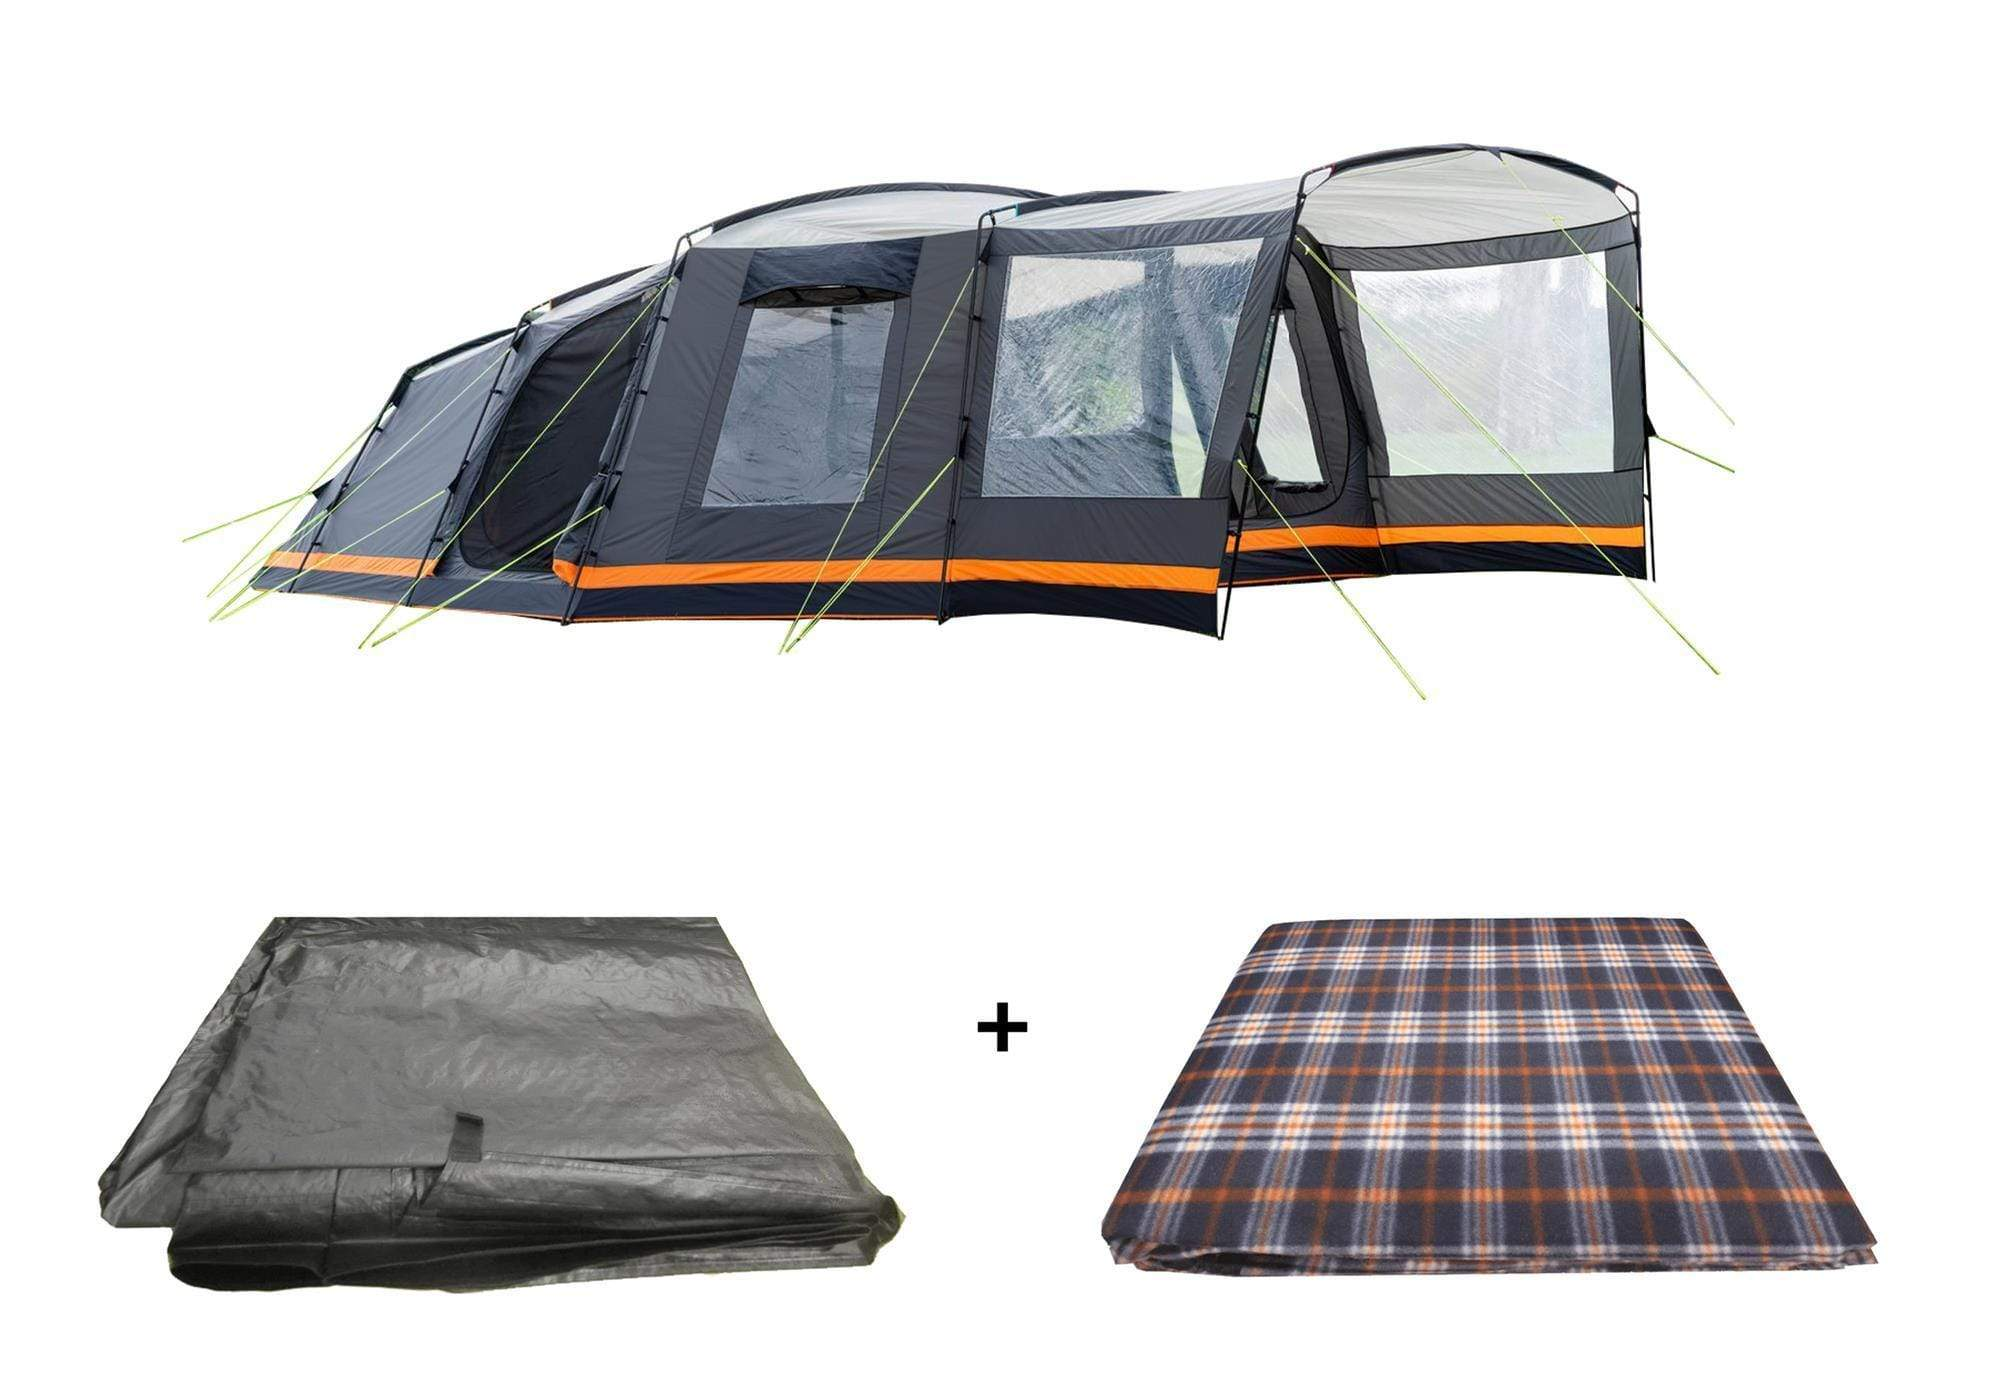 OLPRO Endeavour 7 Berth Family Tent Package